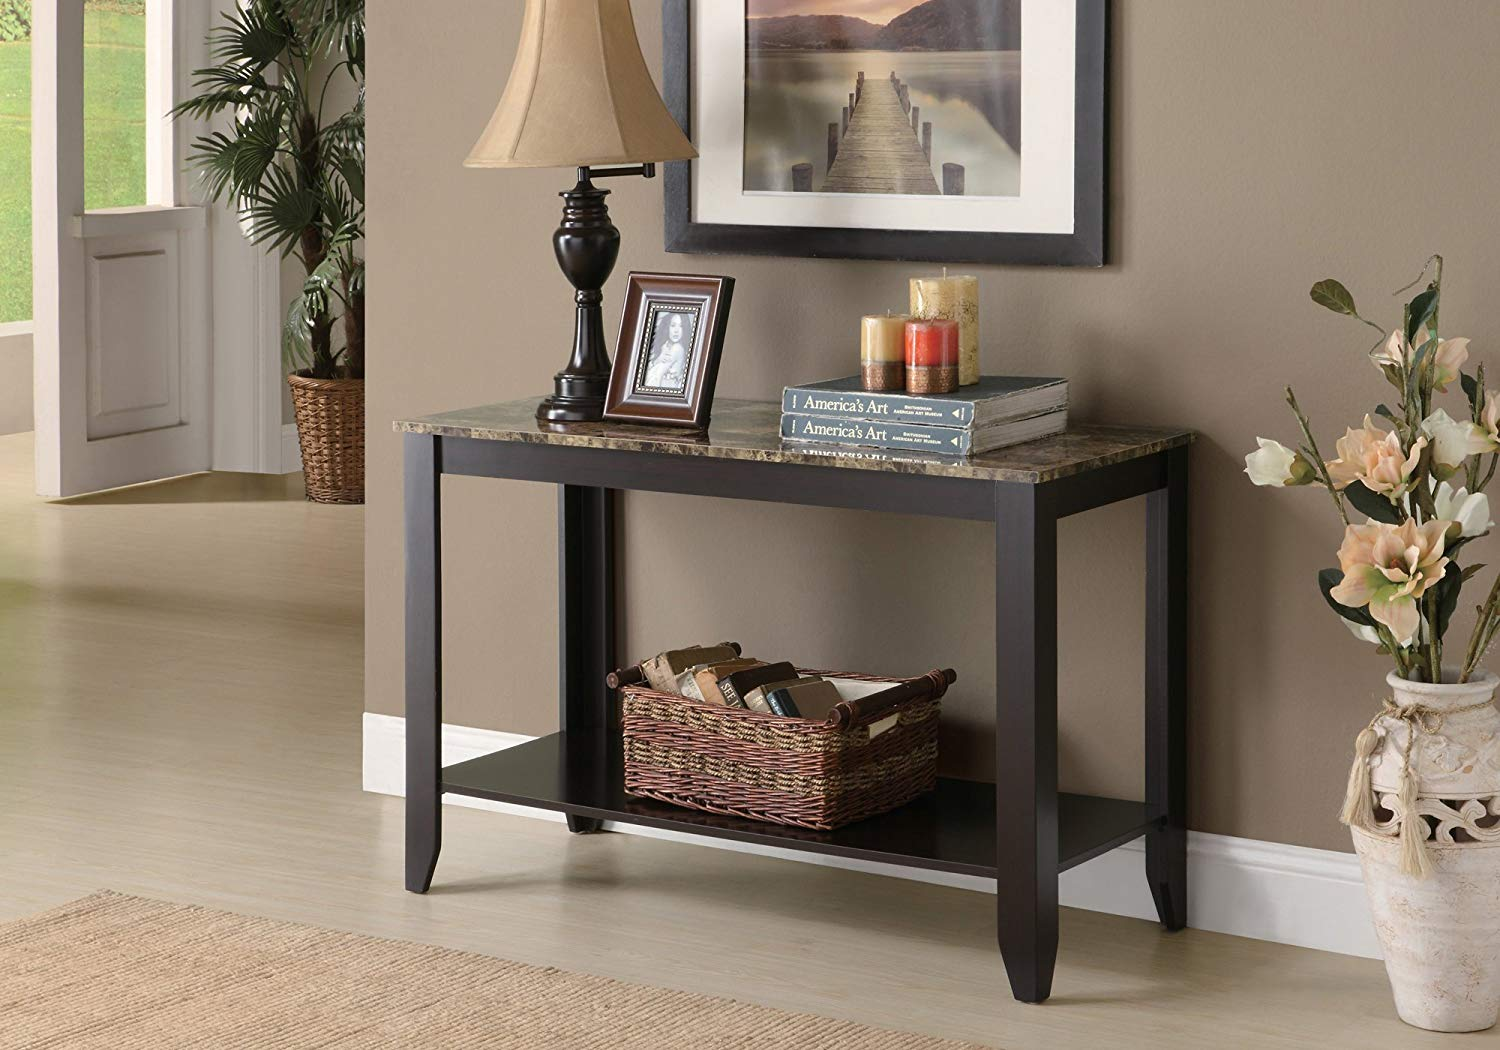 monarch specialties marble look top sofa console table accent side cappuccino inch kitchen dining outdoor wicker chairs country style furniture glass nesting coffee tables white